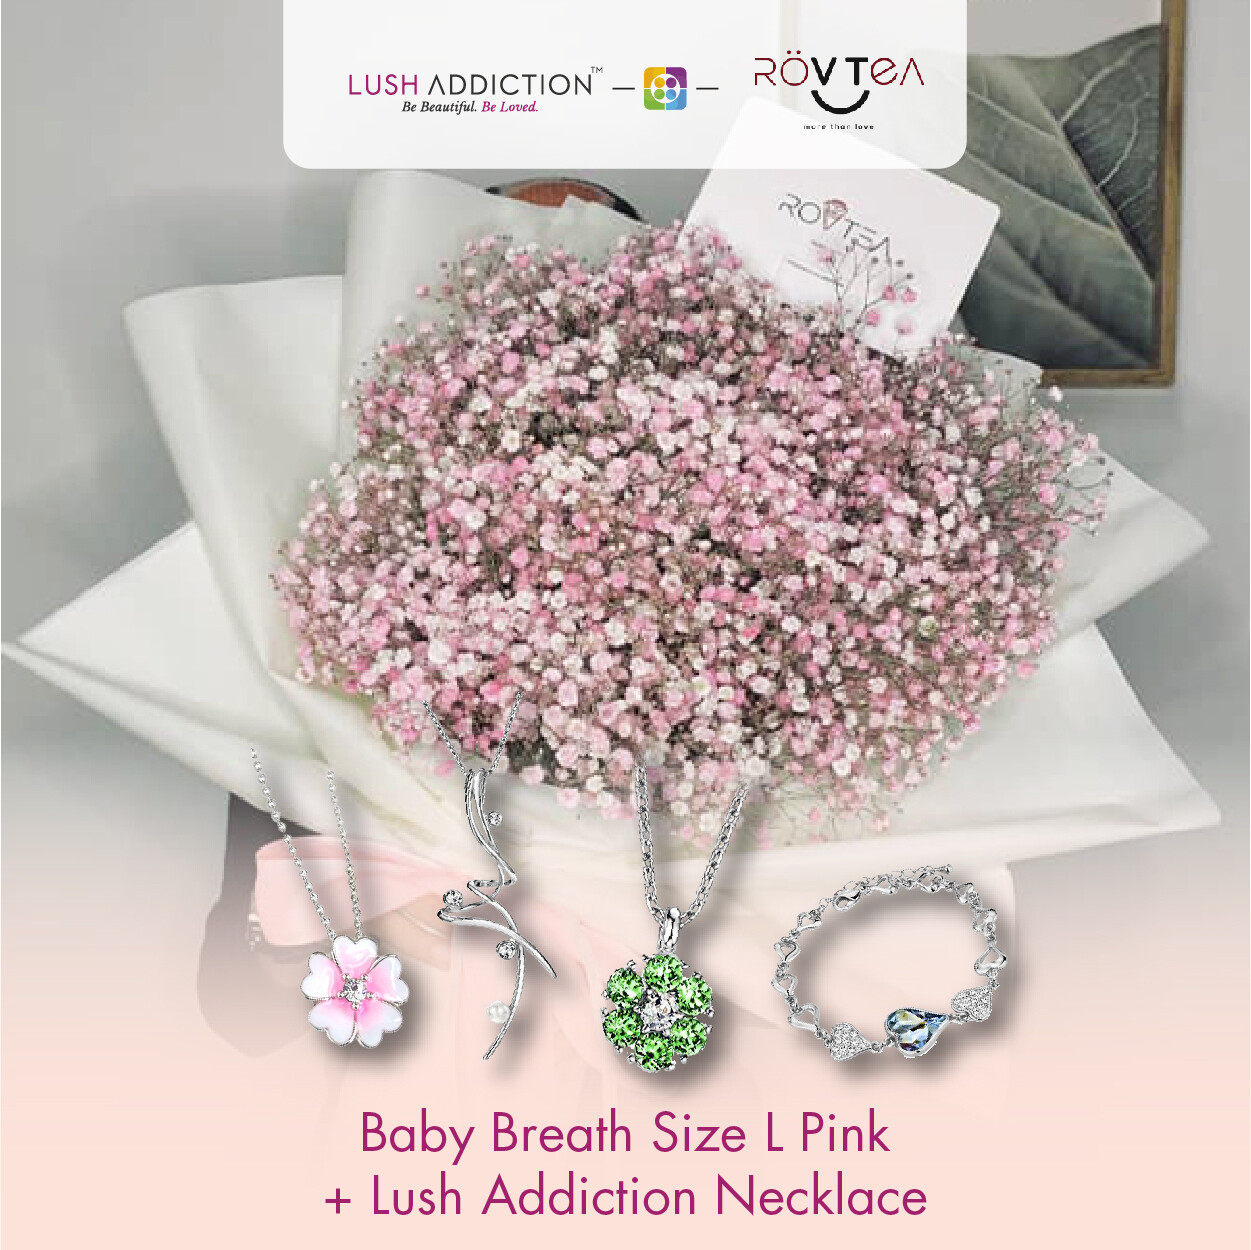 Baby Breath Size L Pink  + Lush Addiction Necklace (By: Rovtea Empire from Ampang)